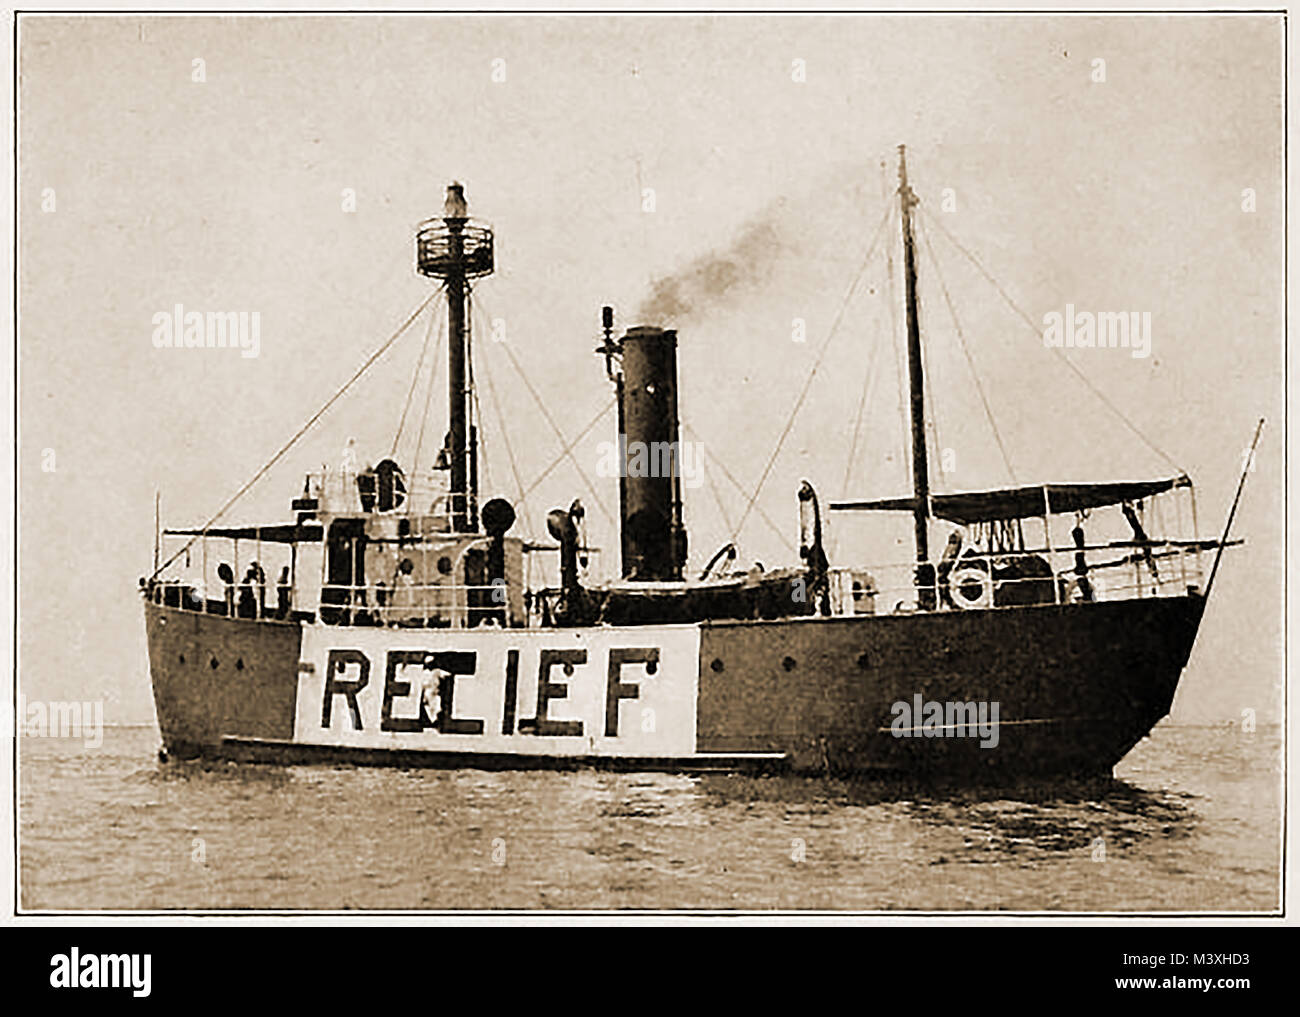 American Lighthouses and Navigation Aids -  A  'Relief' (reserve) light vessel No. 103, Great Lakes, USA - Stock Image